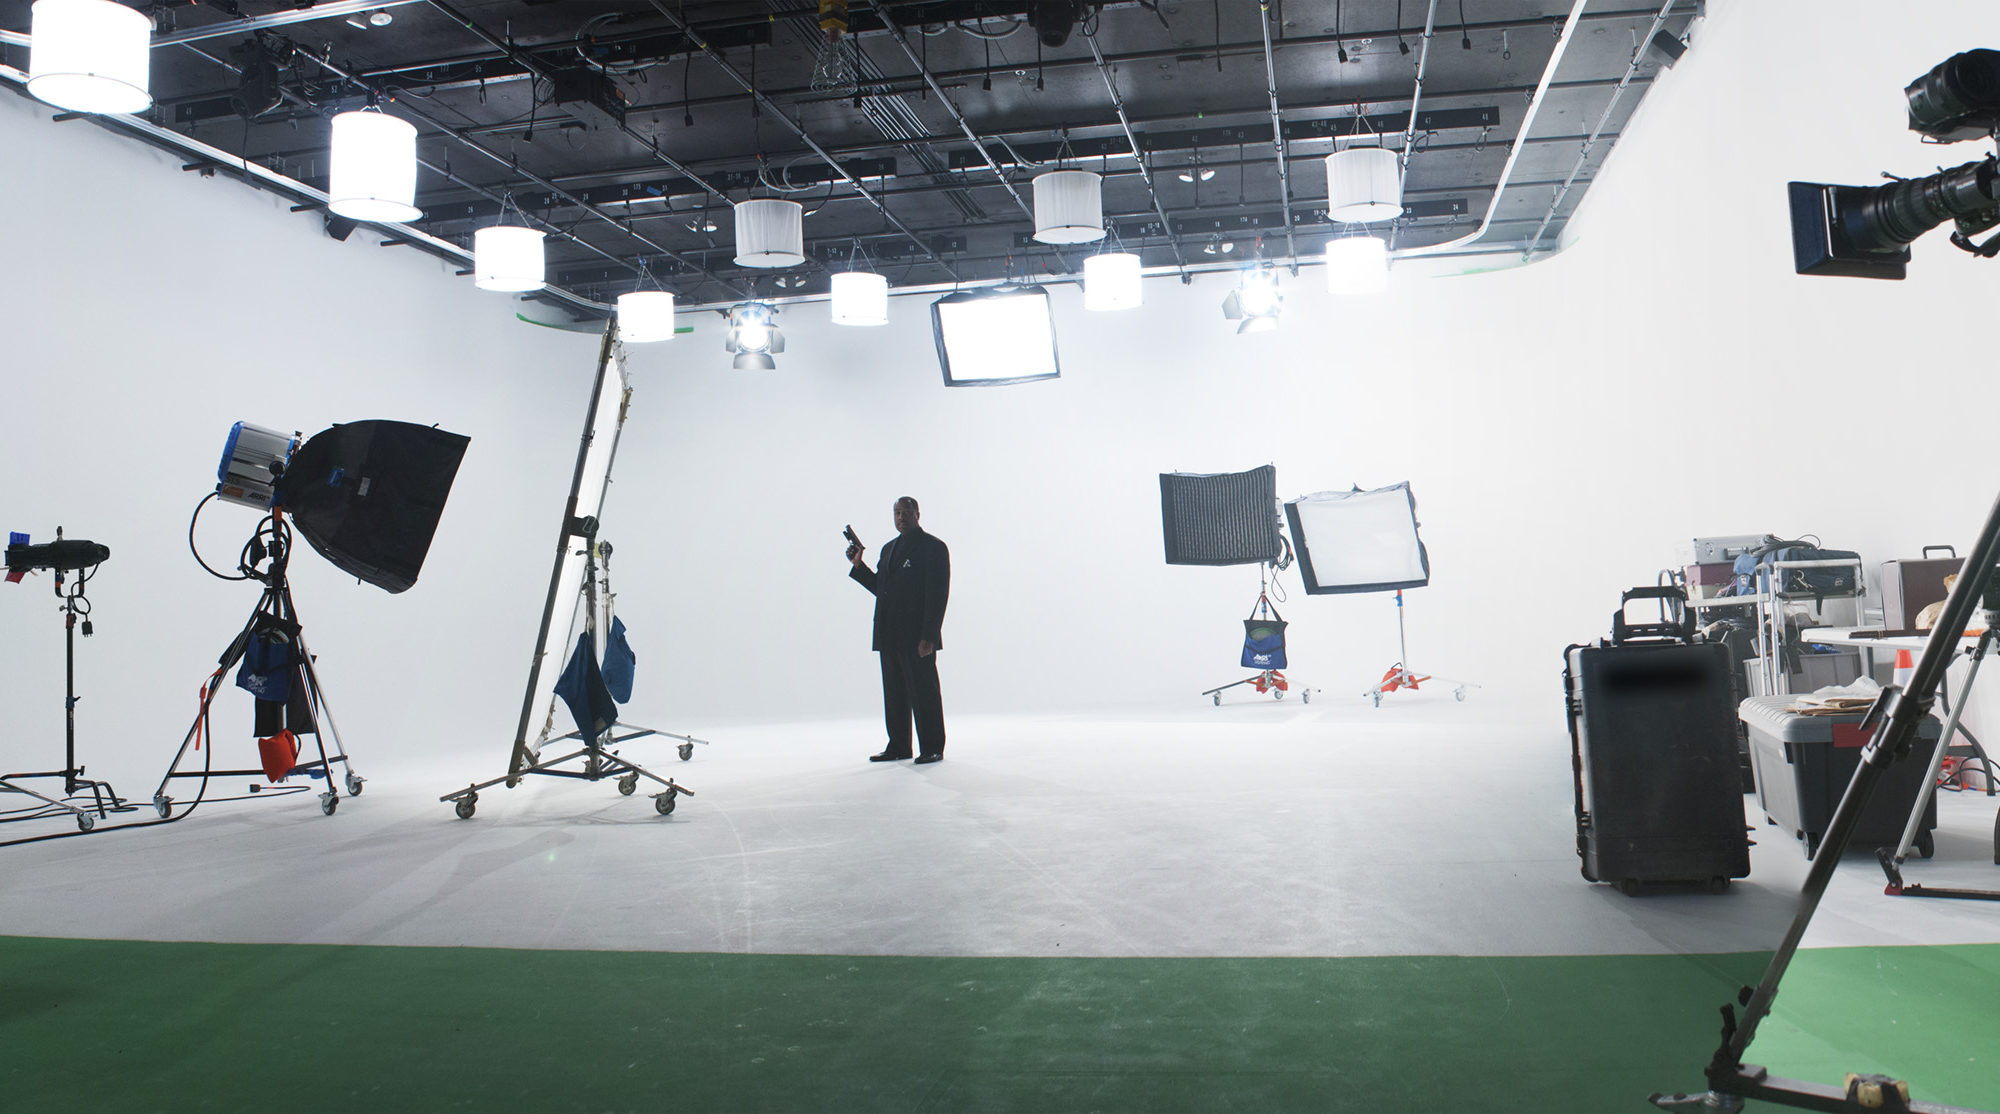 this is the behind the scenes of a film studio.